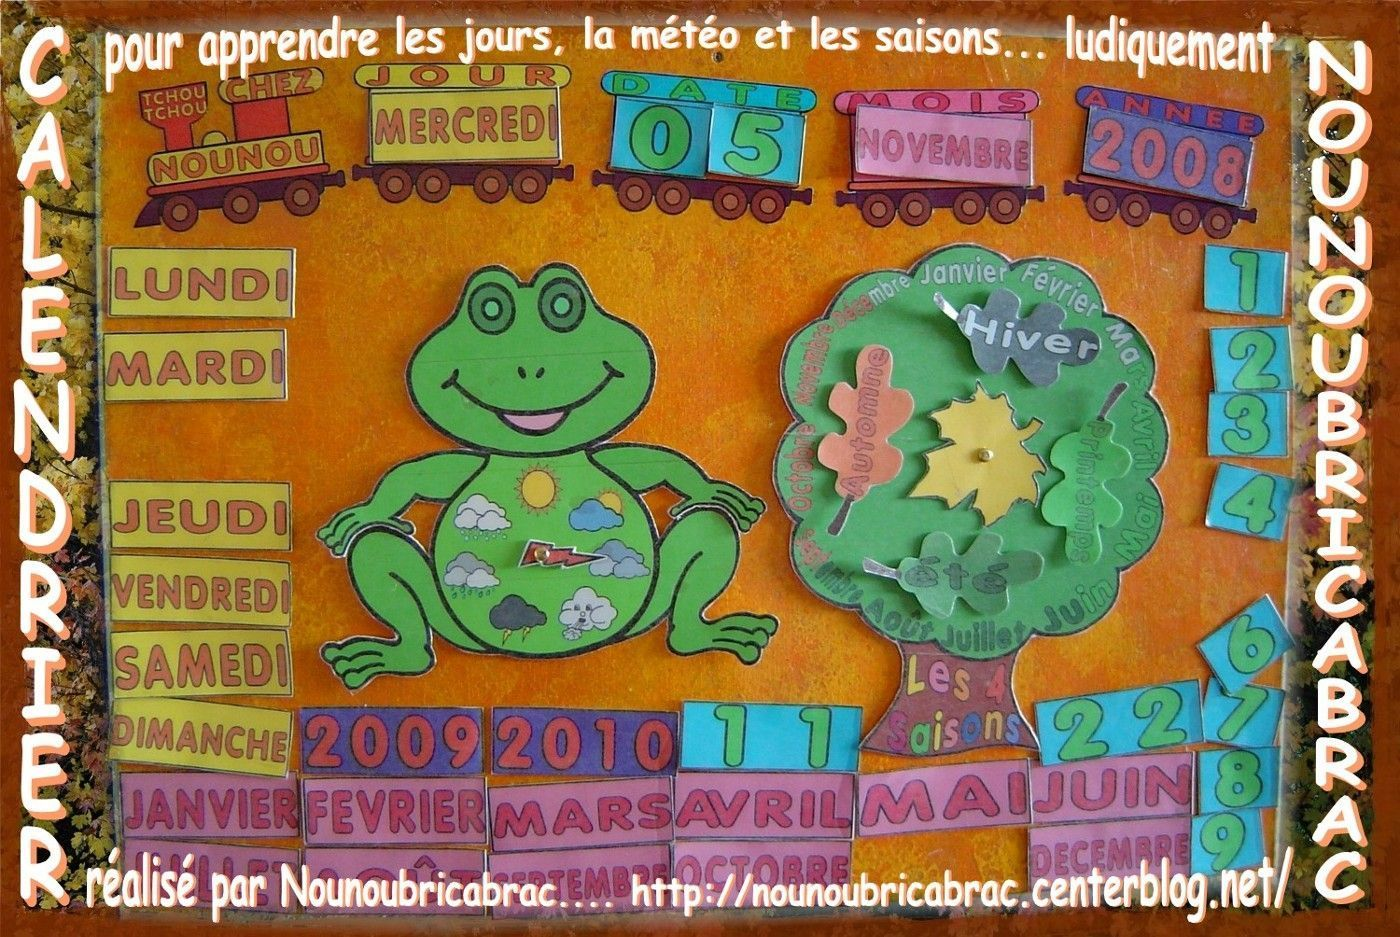 Calendrier pour apprendre les jours, la mto et les saisons... ludiquement